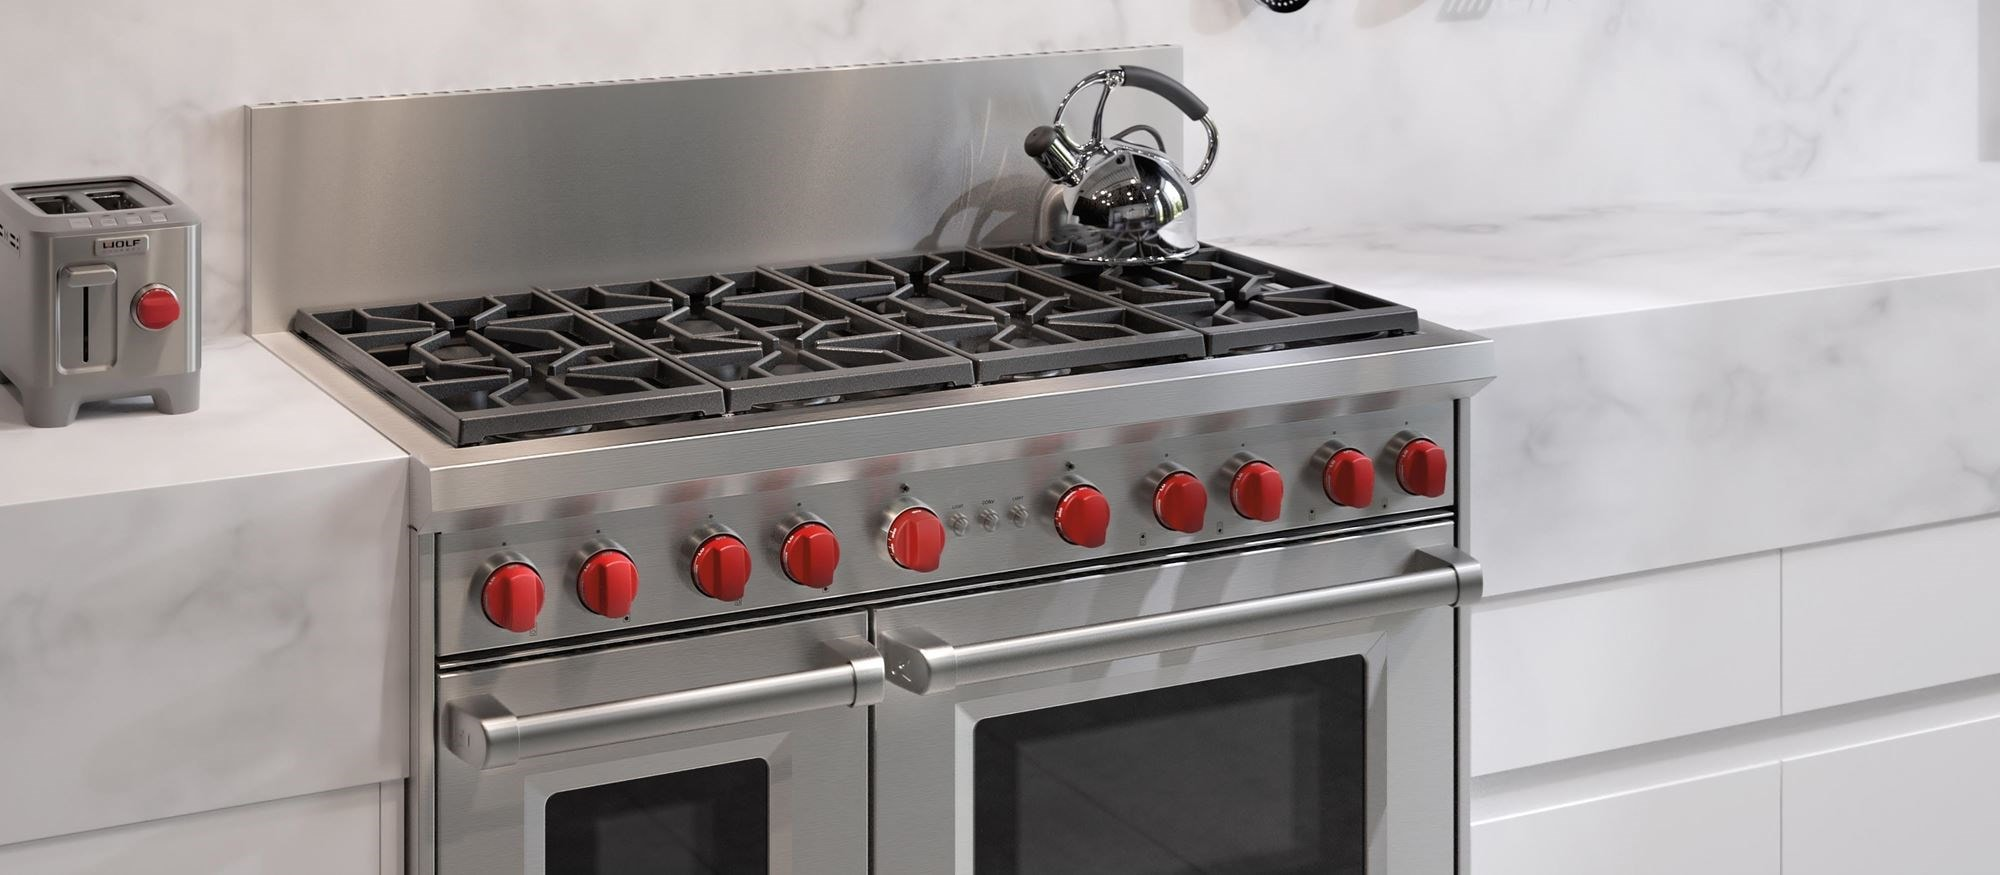 48 Gas Range 8 Burners